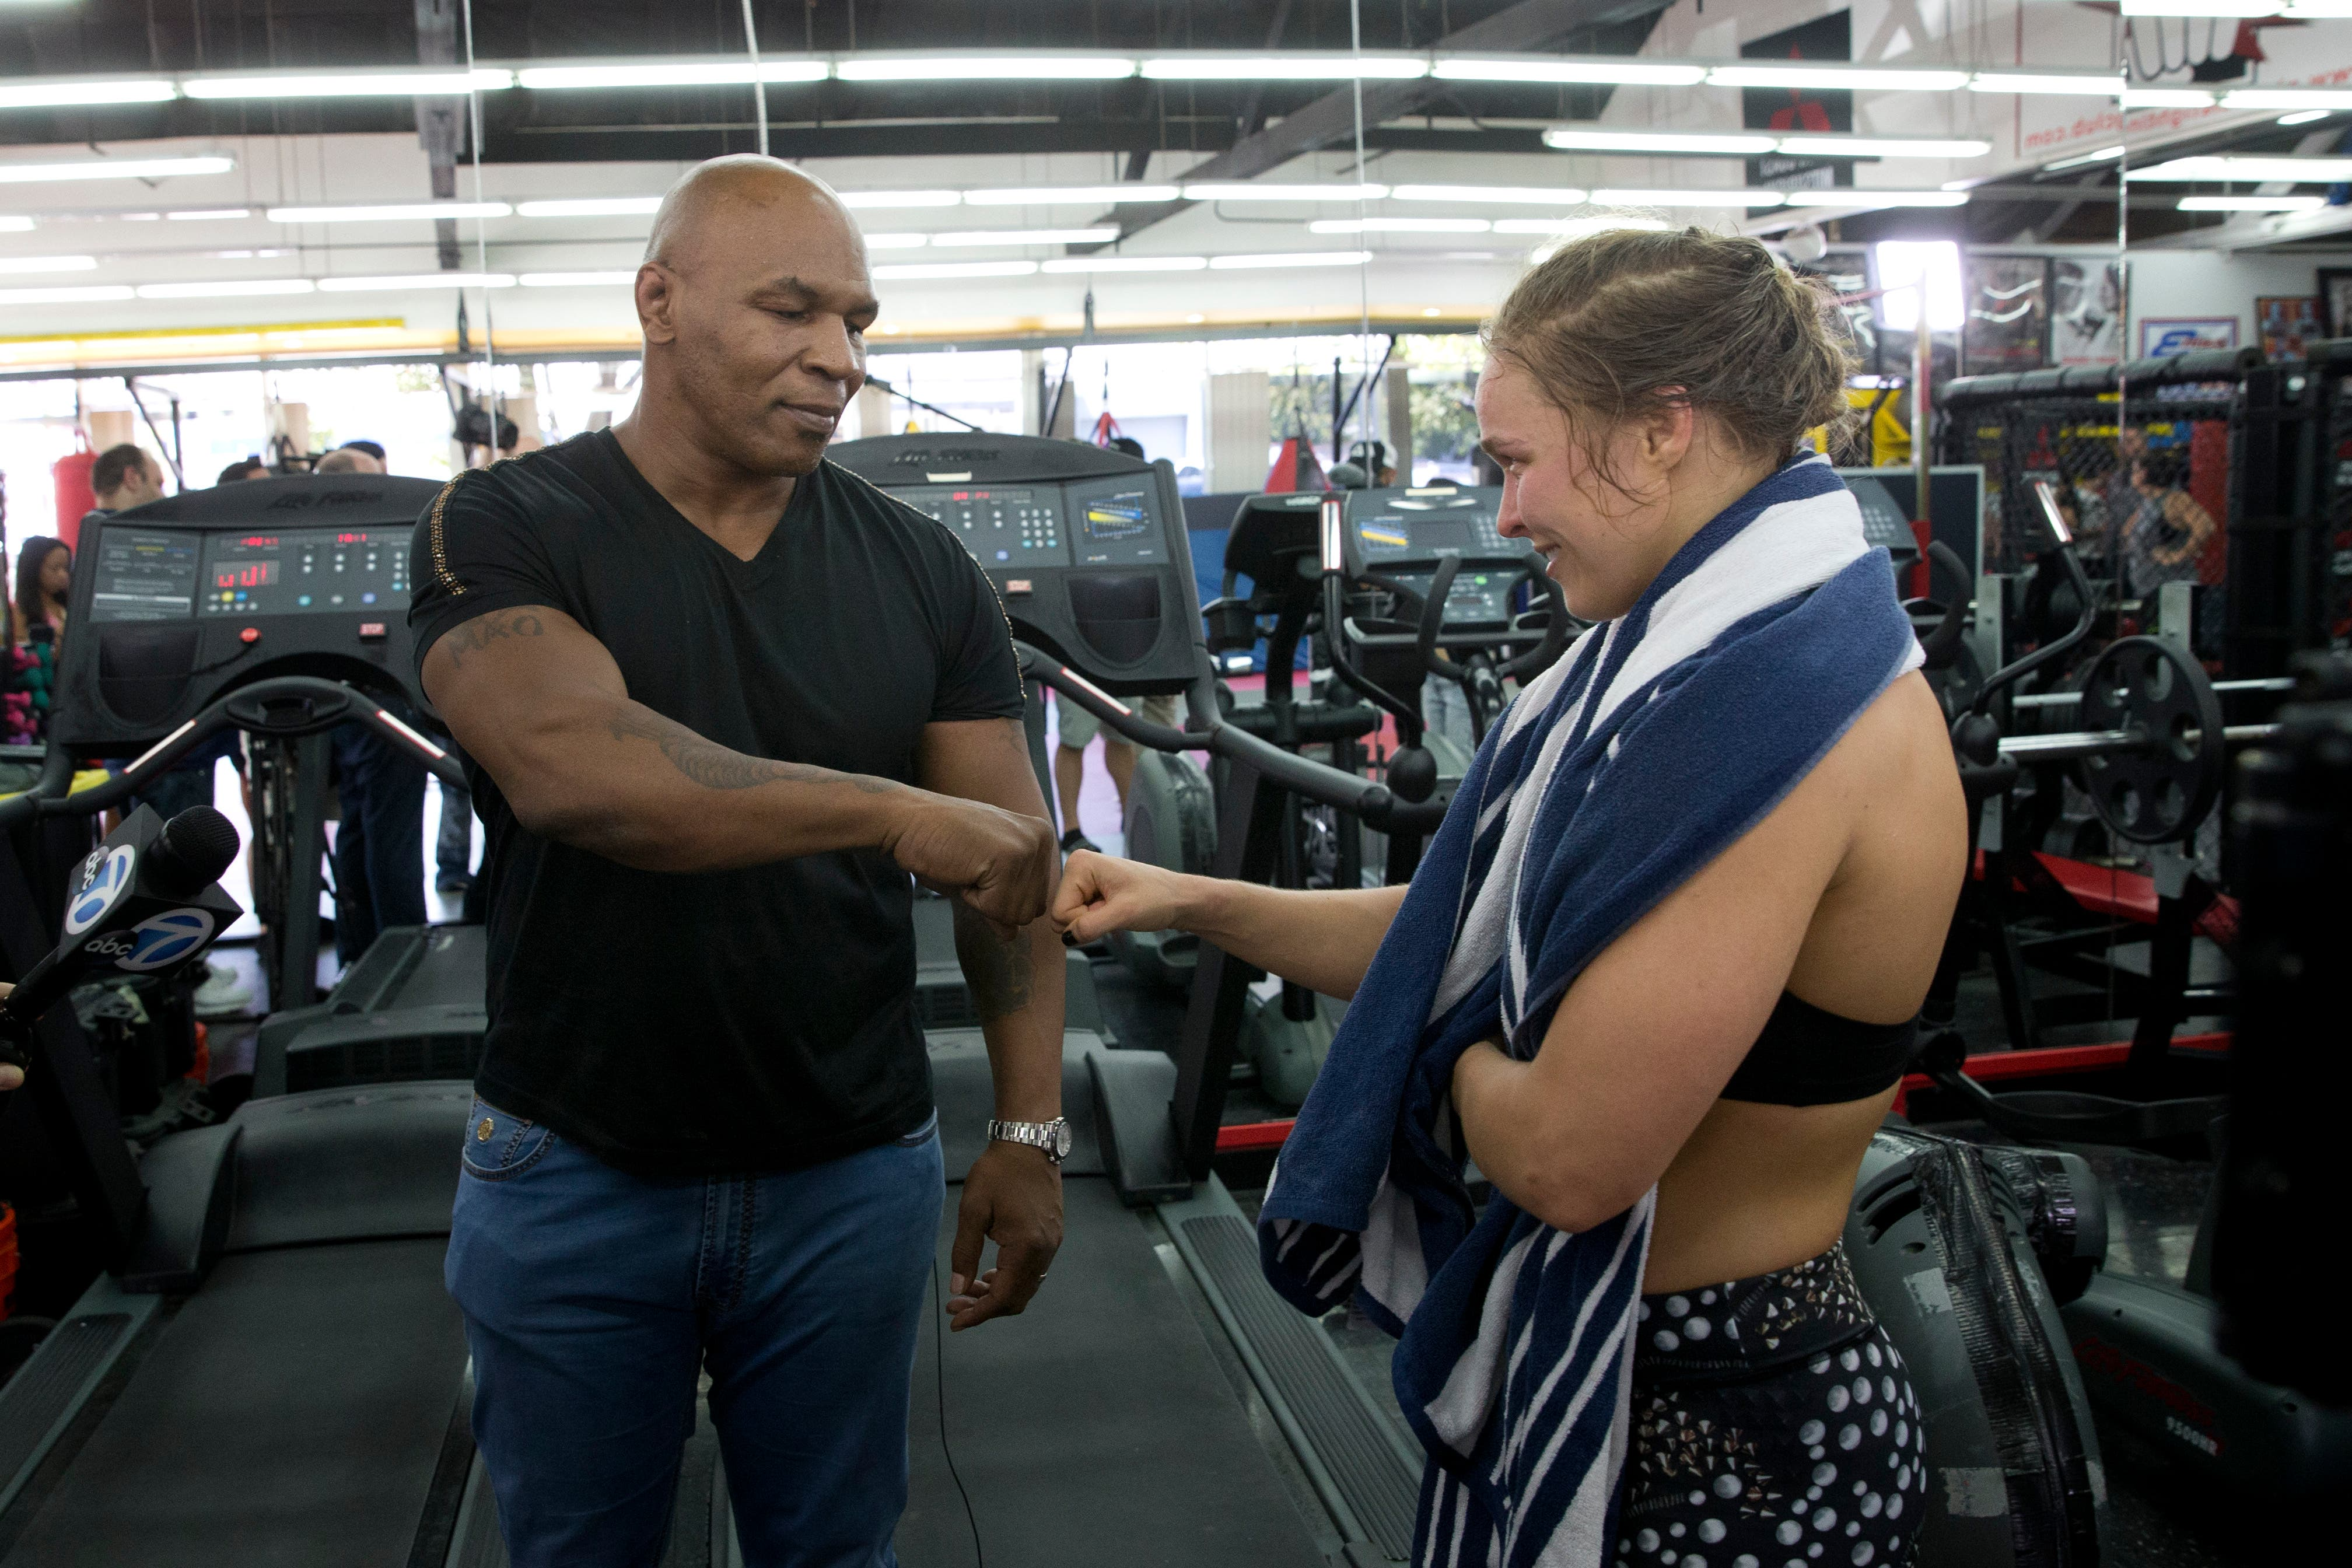 Mixed martial arts fighter Ronda Rousey, right, fist-bumps former boxer Mike Tyson after her workout at Glendale Fighting Club, Wednesday, July 15, 2015, in Glendale, Calif. Rousey, the UFC bantamweight champion, will return to the octagon against Brazil's unbeaten Bethe Correia at UFC 190 in Rio de Janeiro on Aug. 1. (AP Photo/Jae C. Hong)